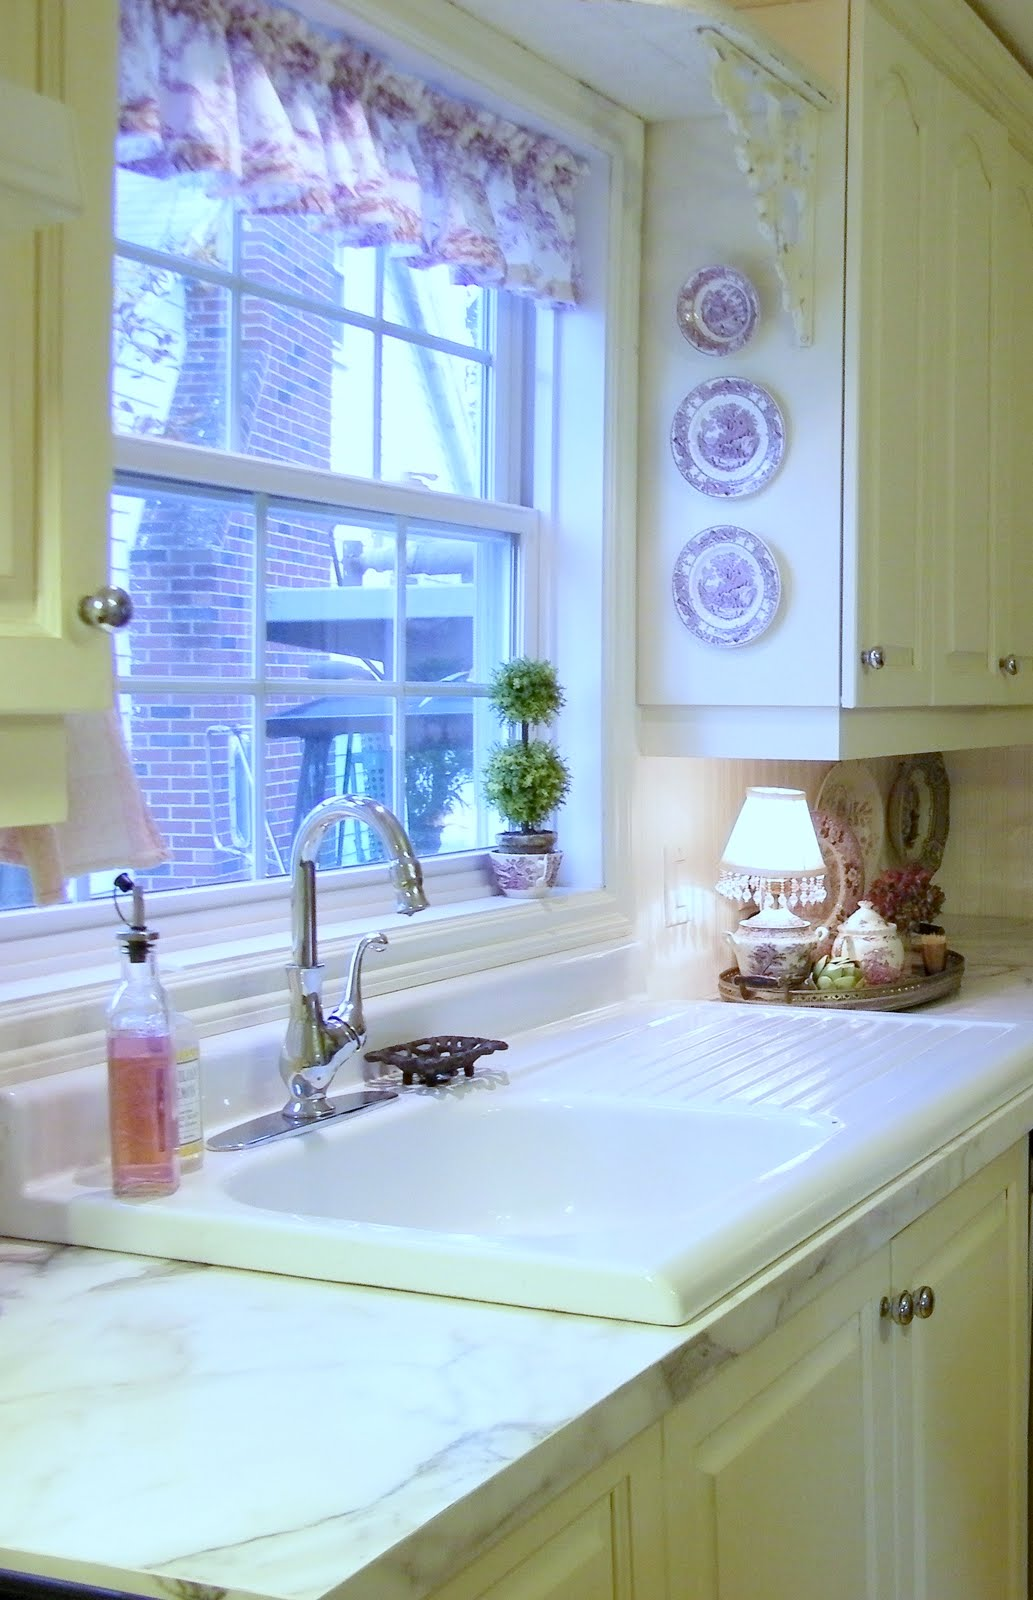 Maison Decor: Putting in the formica countertop and sink